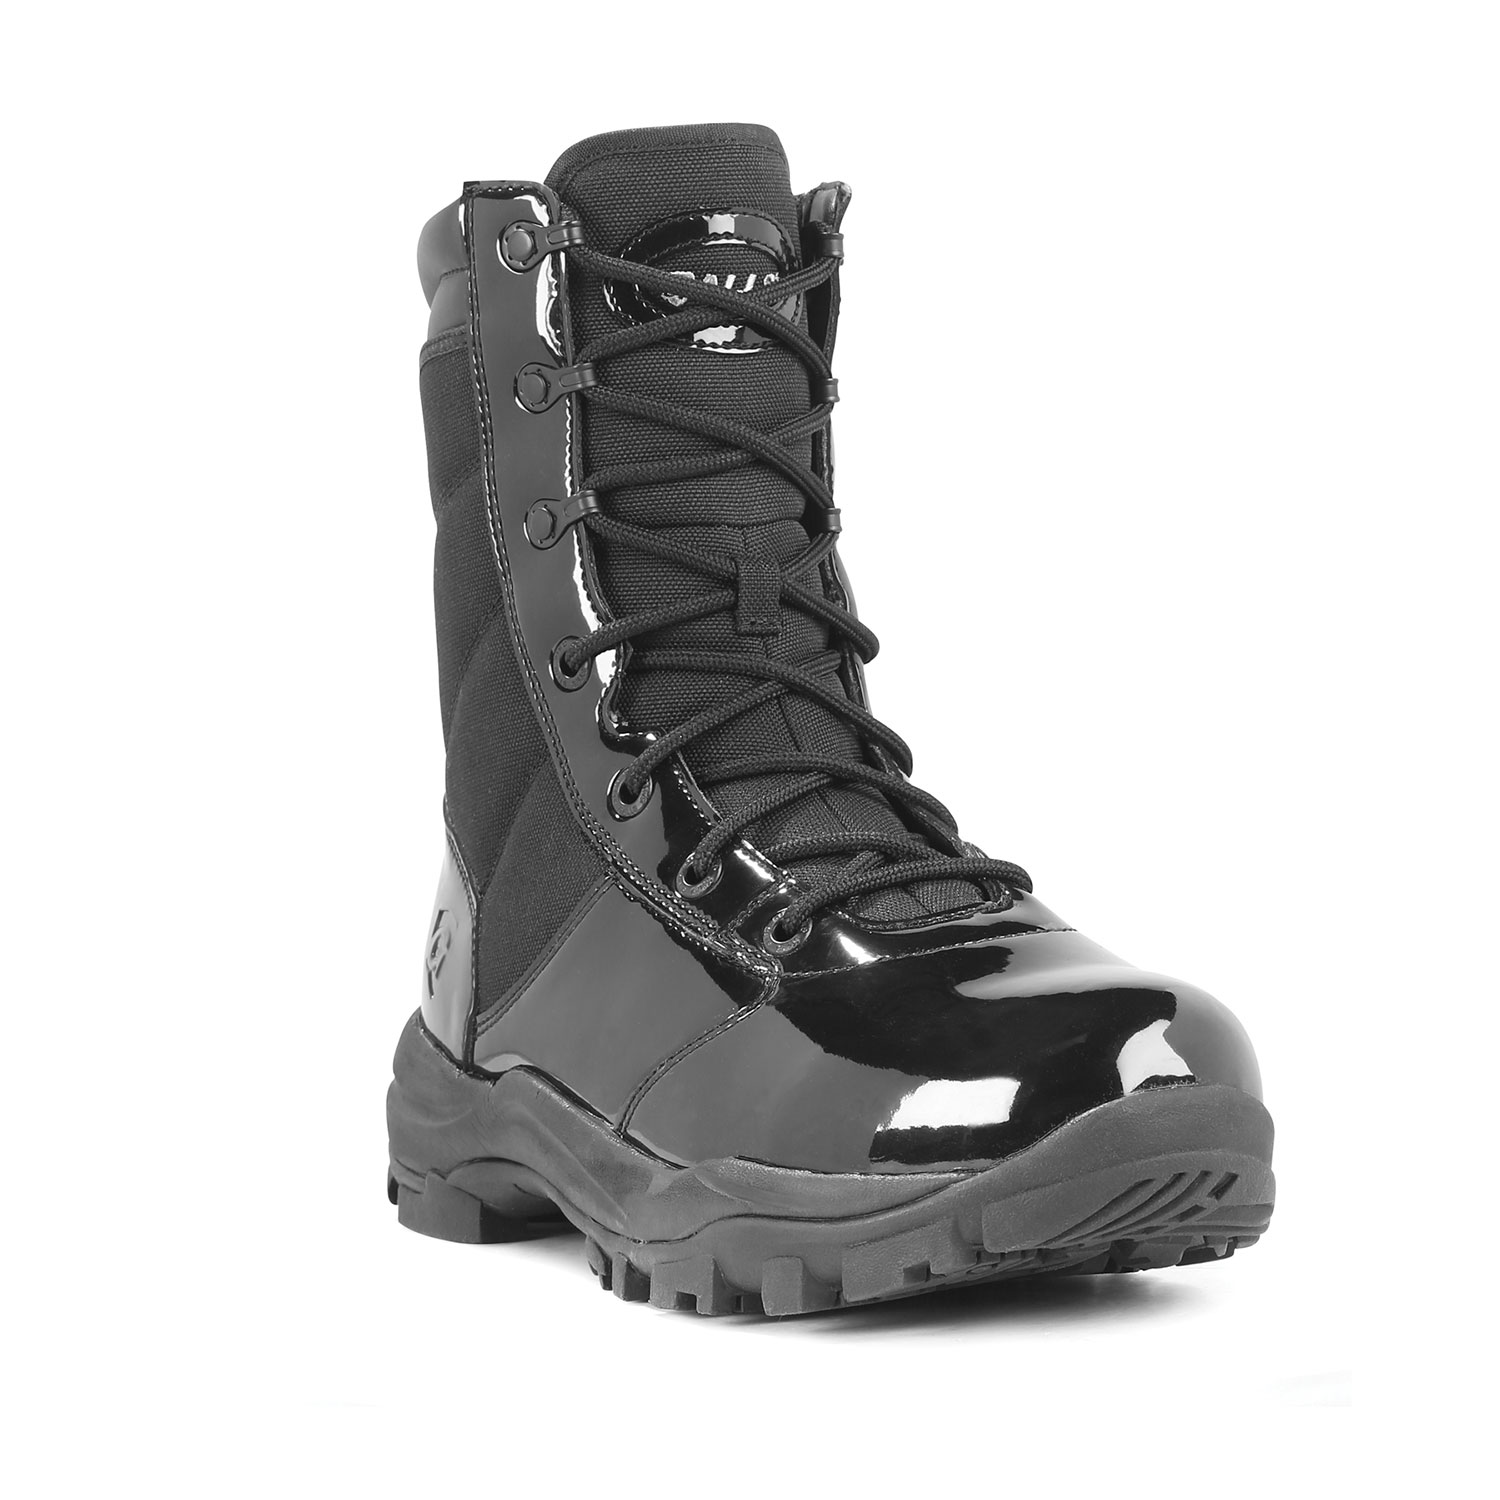 "Galls 8"" High Gloss Duty Boot"